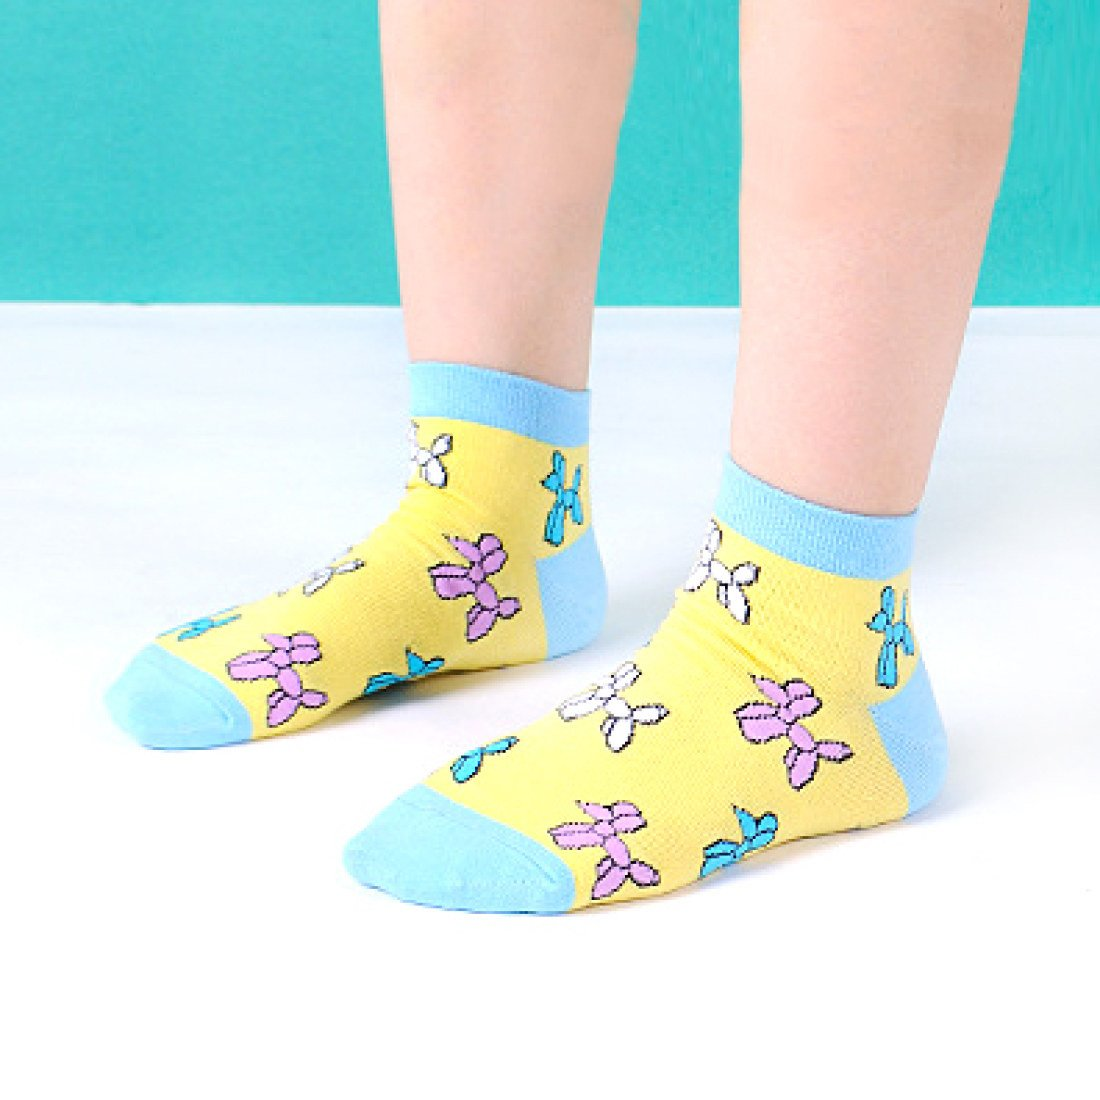 Balloon Dog Shaped Animal Graphic Cotton Short Ankle Socks in Yellow